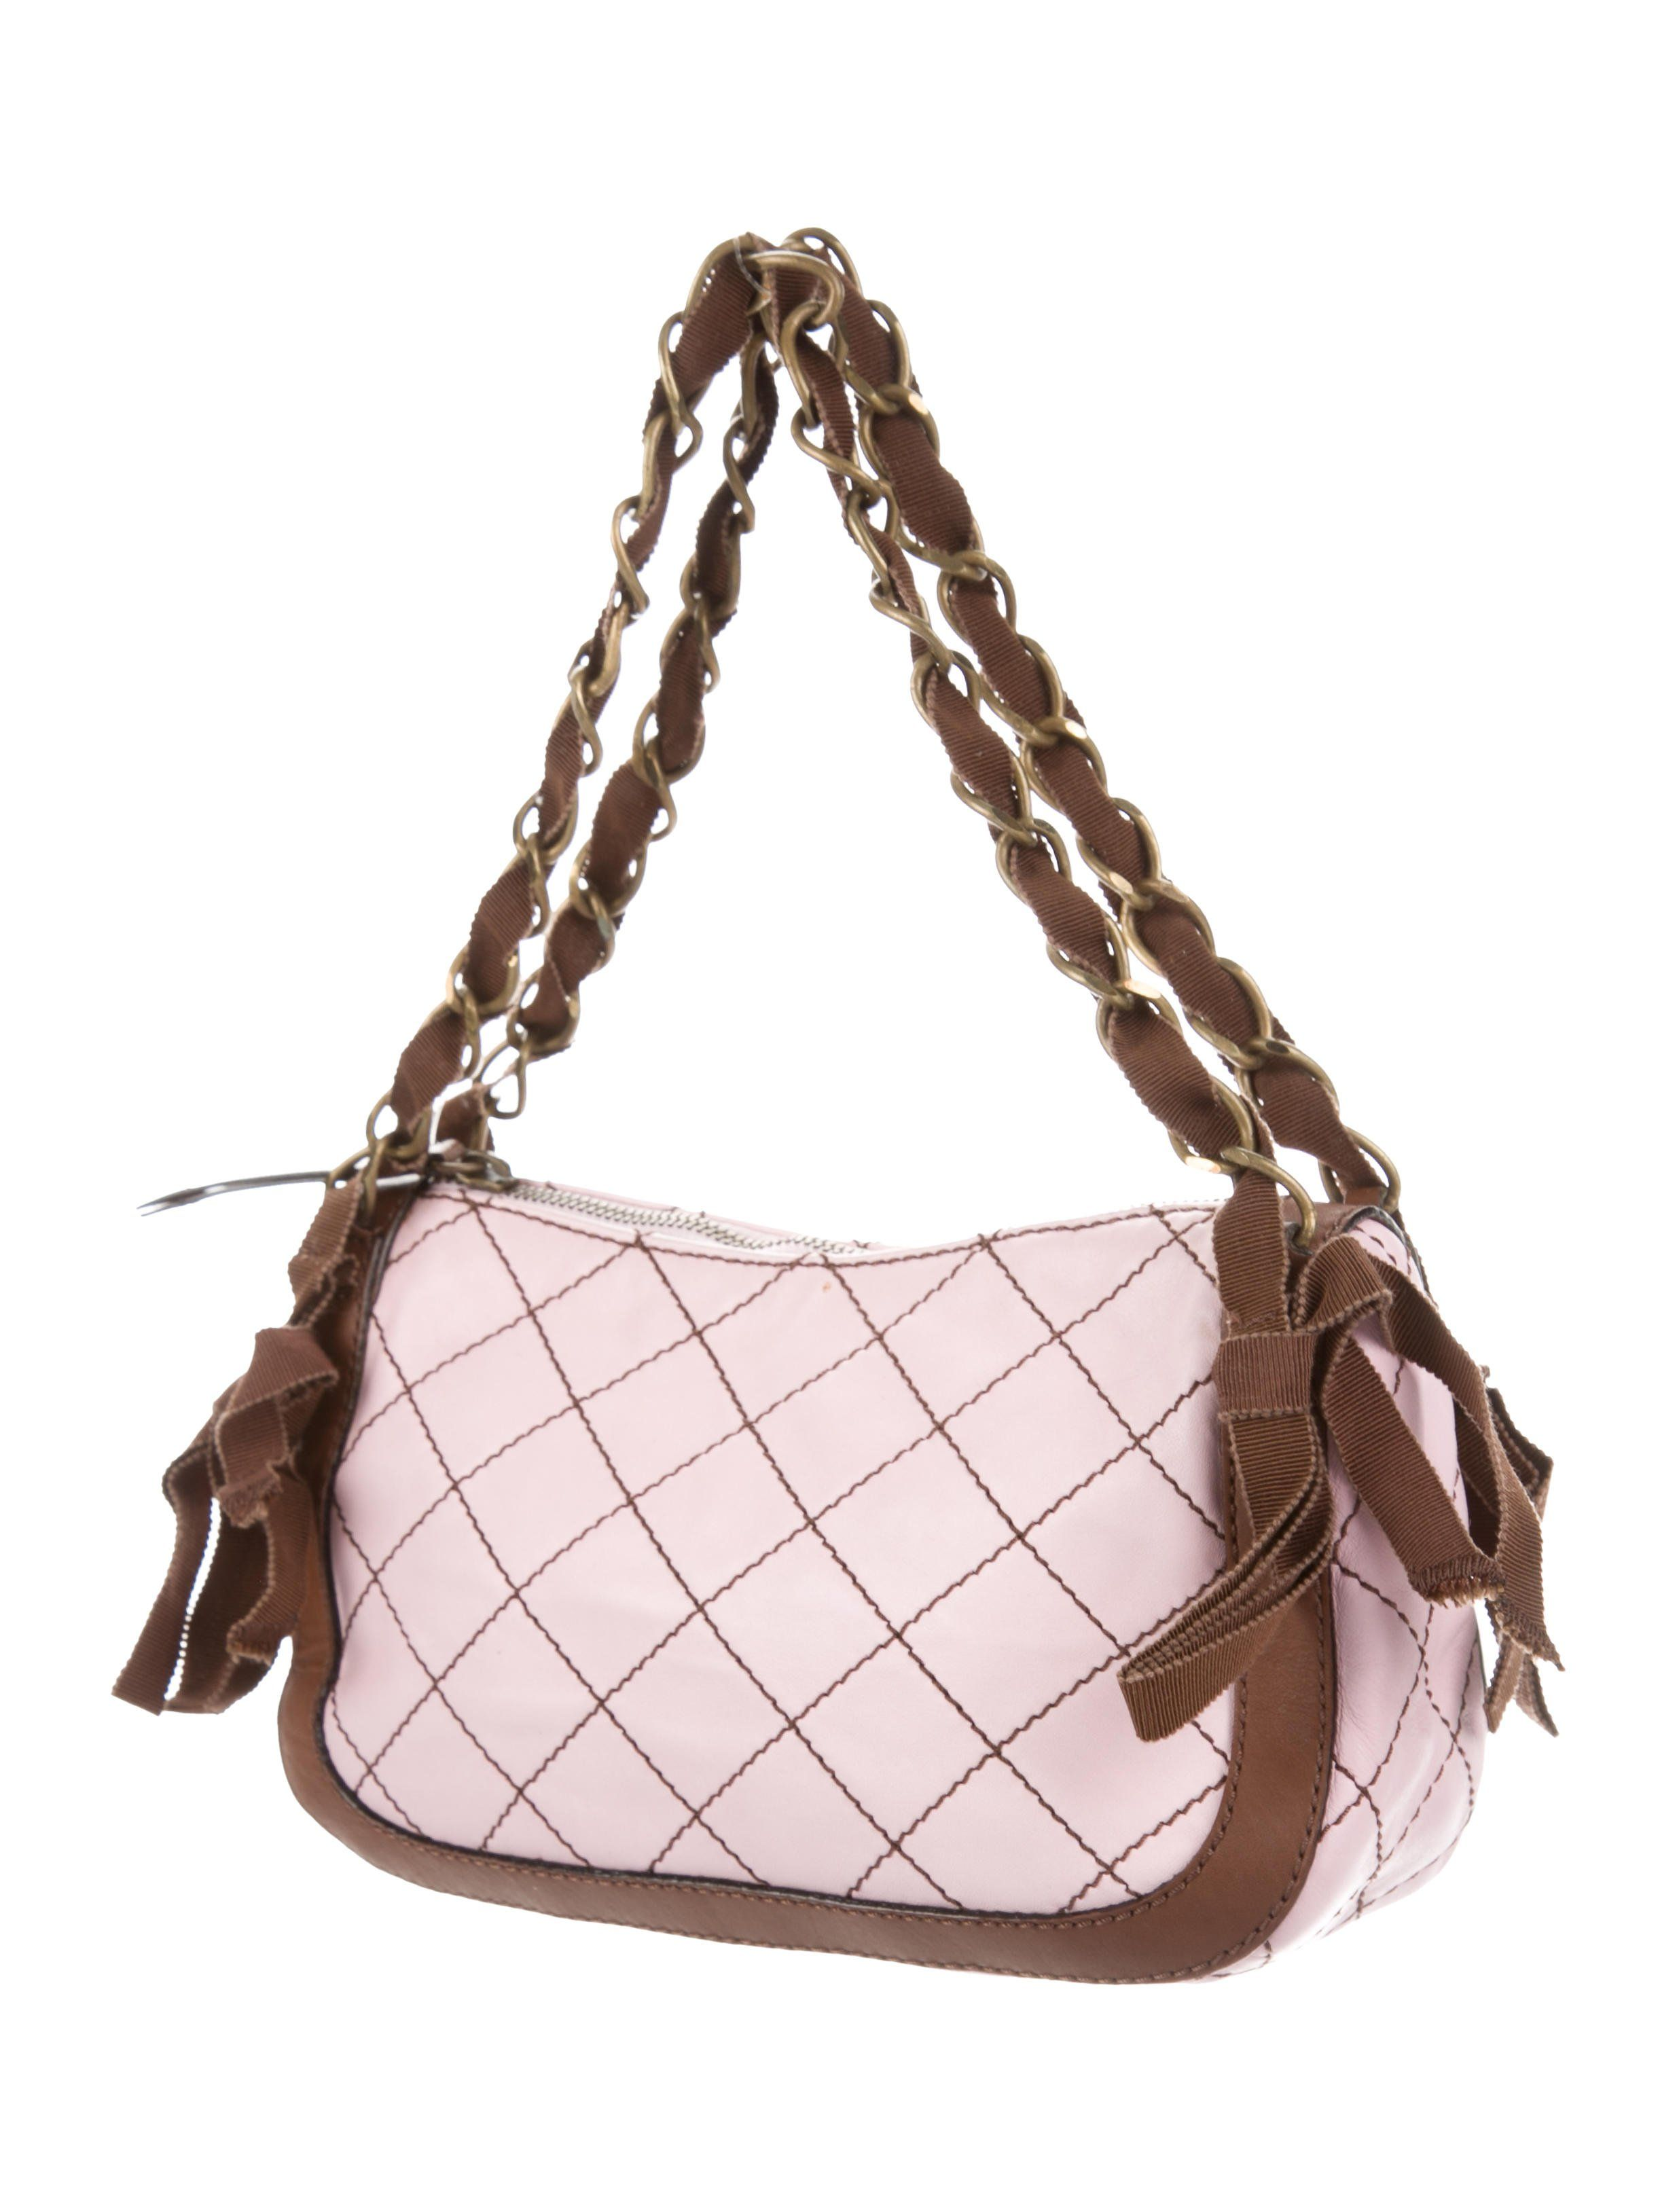 df385d4c6d9 Pink quilted leather Moschino Cheap and Chic shoulder bag with antiqued  gold-tone hardware, dual woven chain-link straps featuring grosgrain tassel  accents, ...